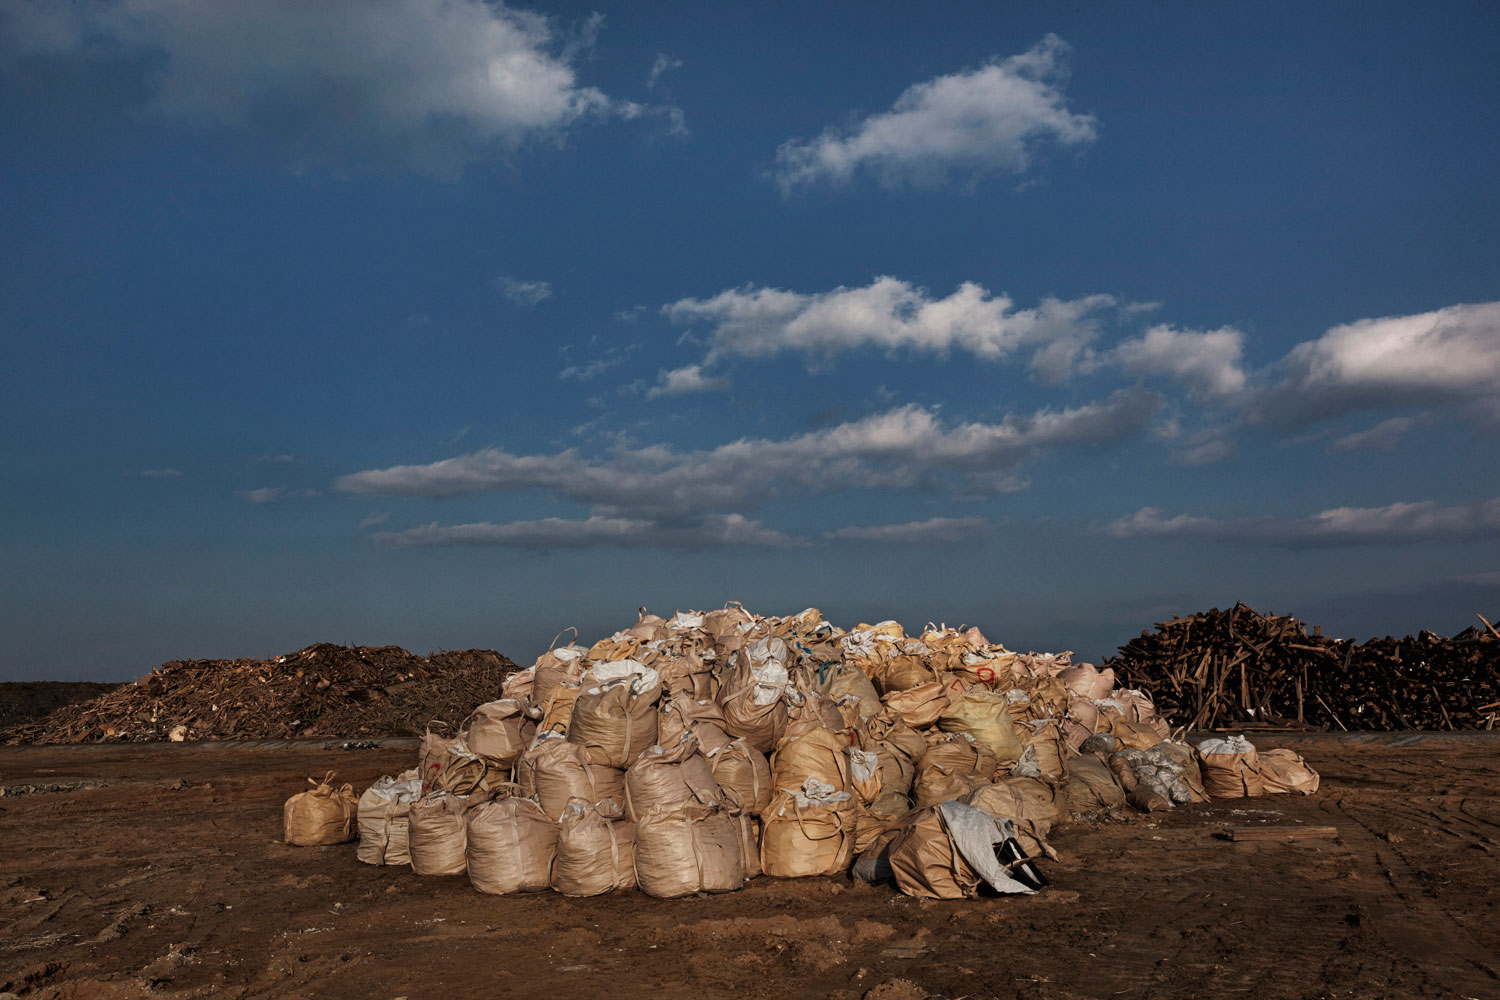 Feb. 24, 2012. Rikuzentakata, Japan. A pile of clothing, bedding and household textiles collected from the devastated area that cannot be recycled.